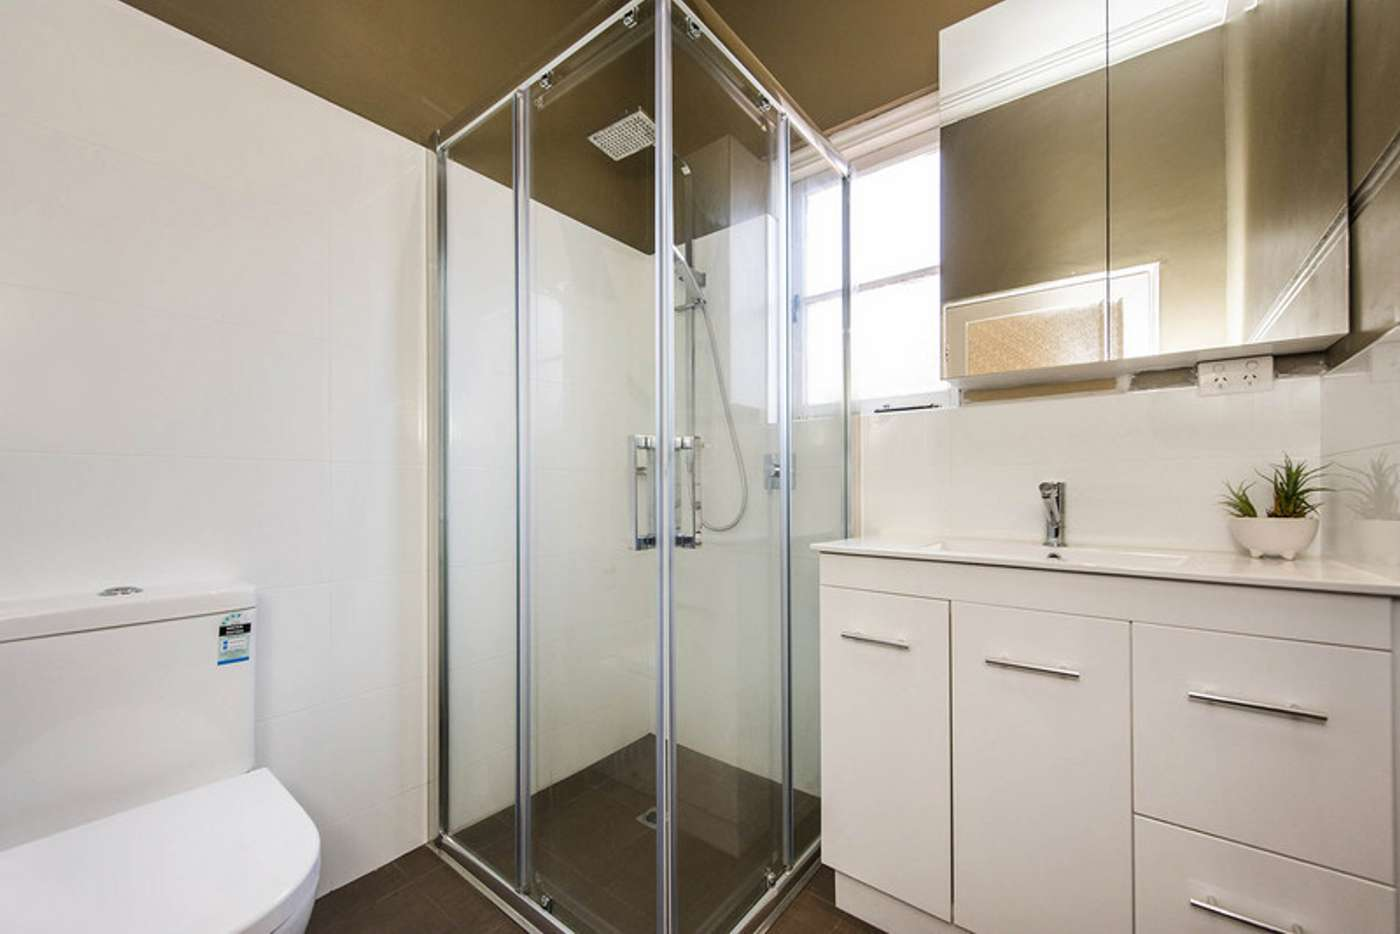 Sixth view of Homely house listing, 21 Kimberley Street, West Leederville WA 6007